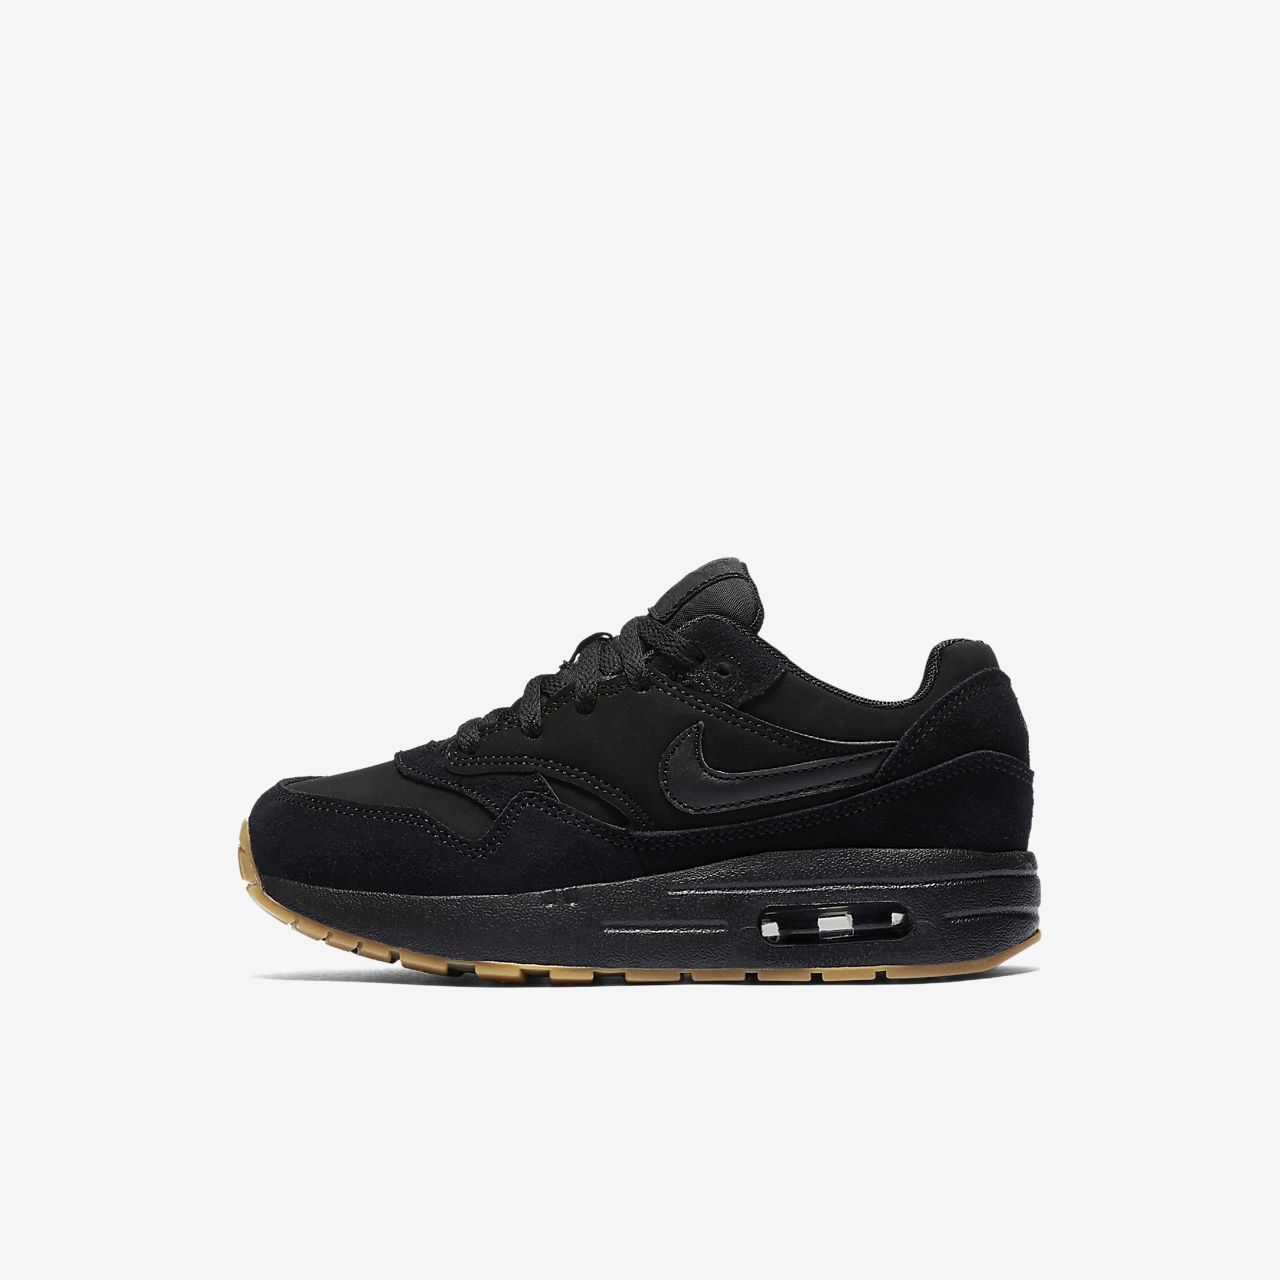 competitive price 97bad 766c2 ... Chaussure Nike Air Max 1 pour Jeune enfant